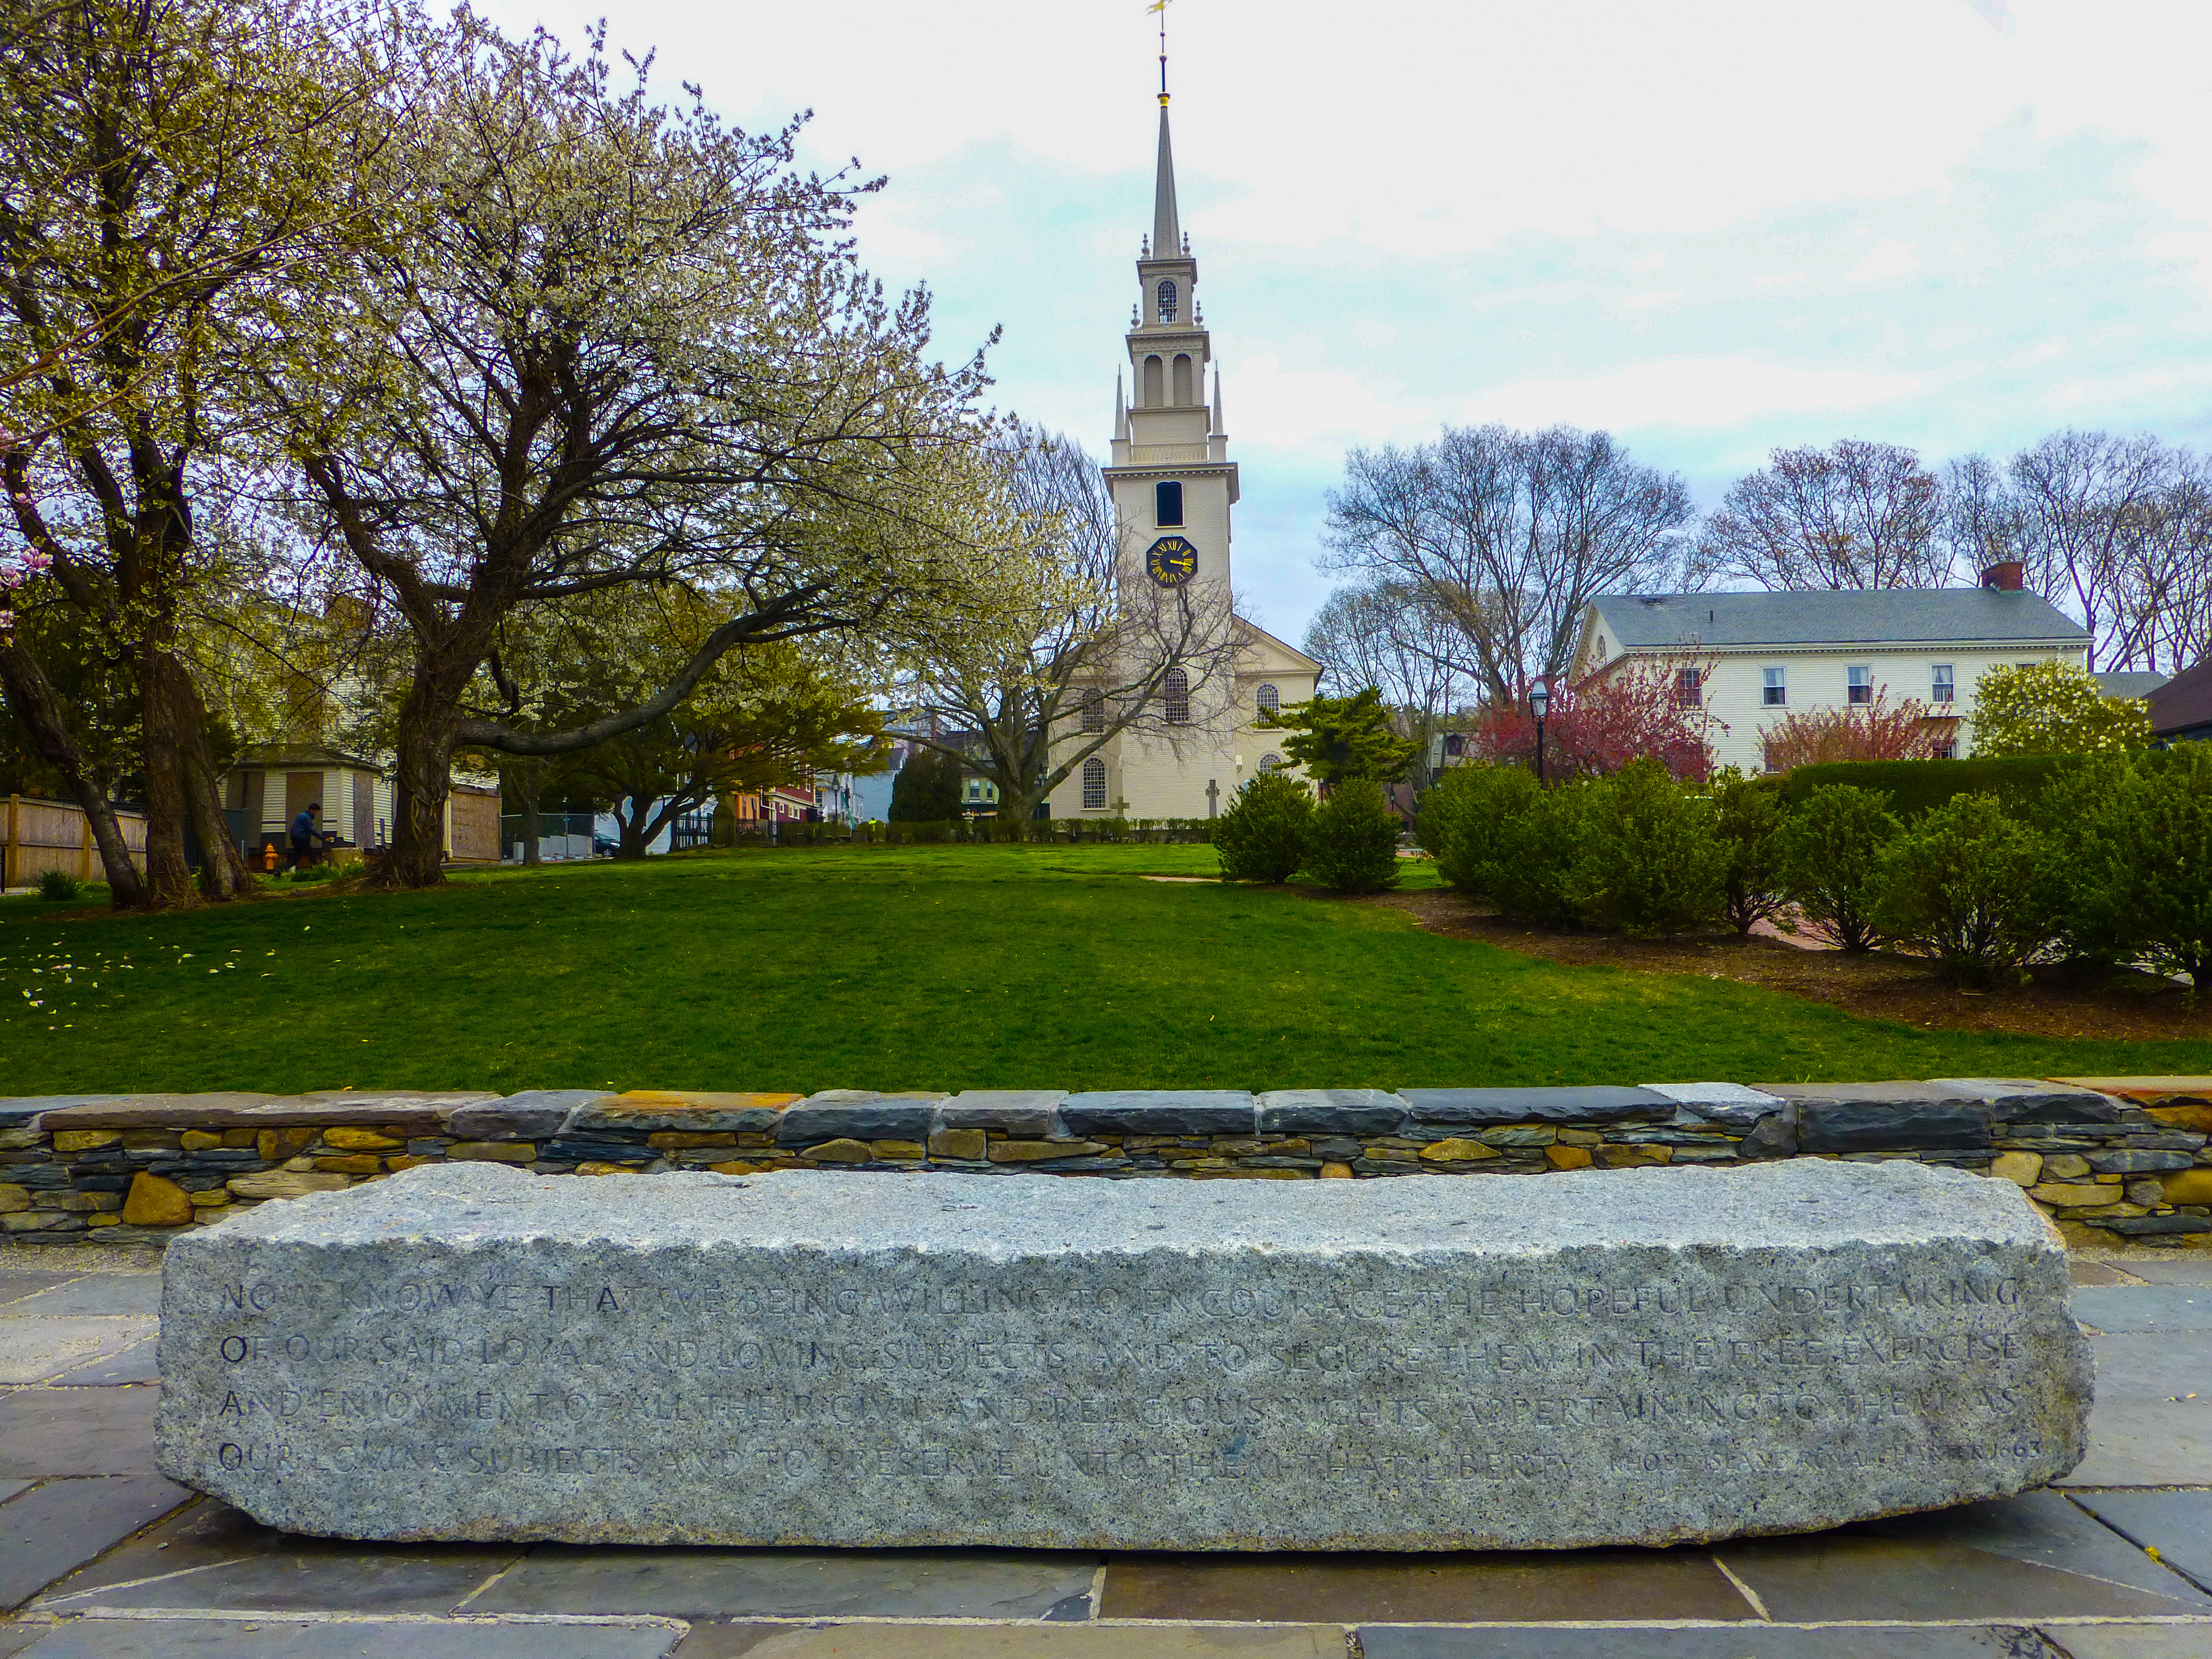 Top Things to See and Do in Historic Newport, Rhode Island (Like Trinity Church above)